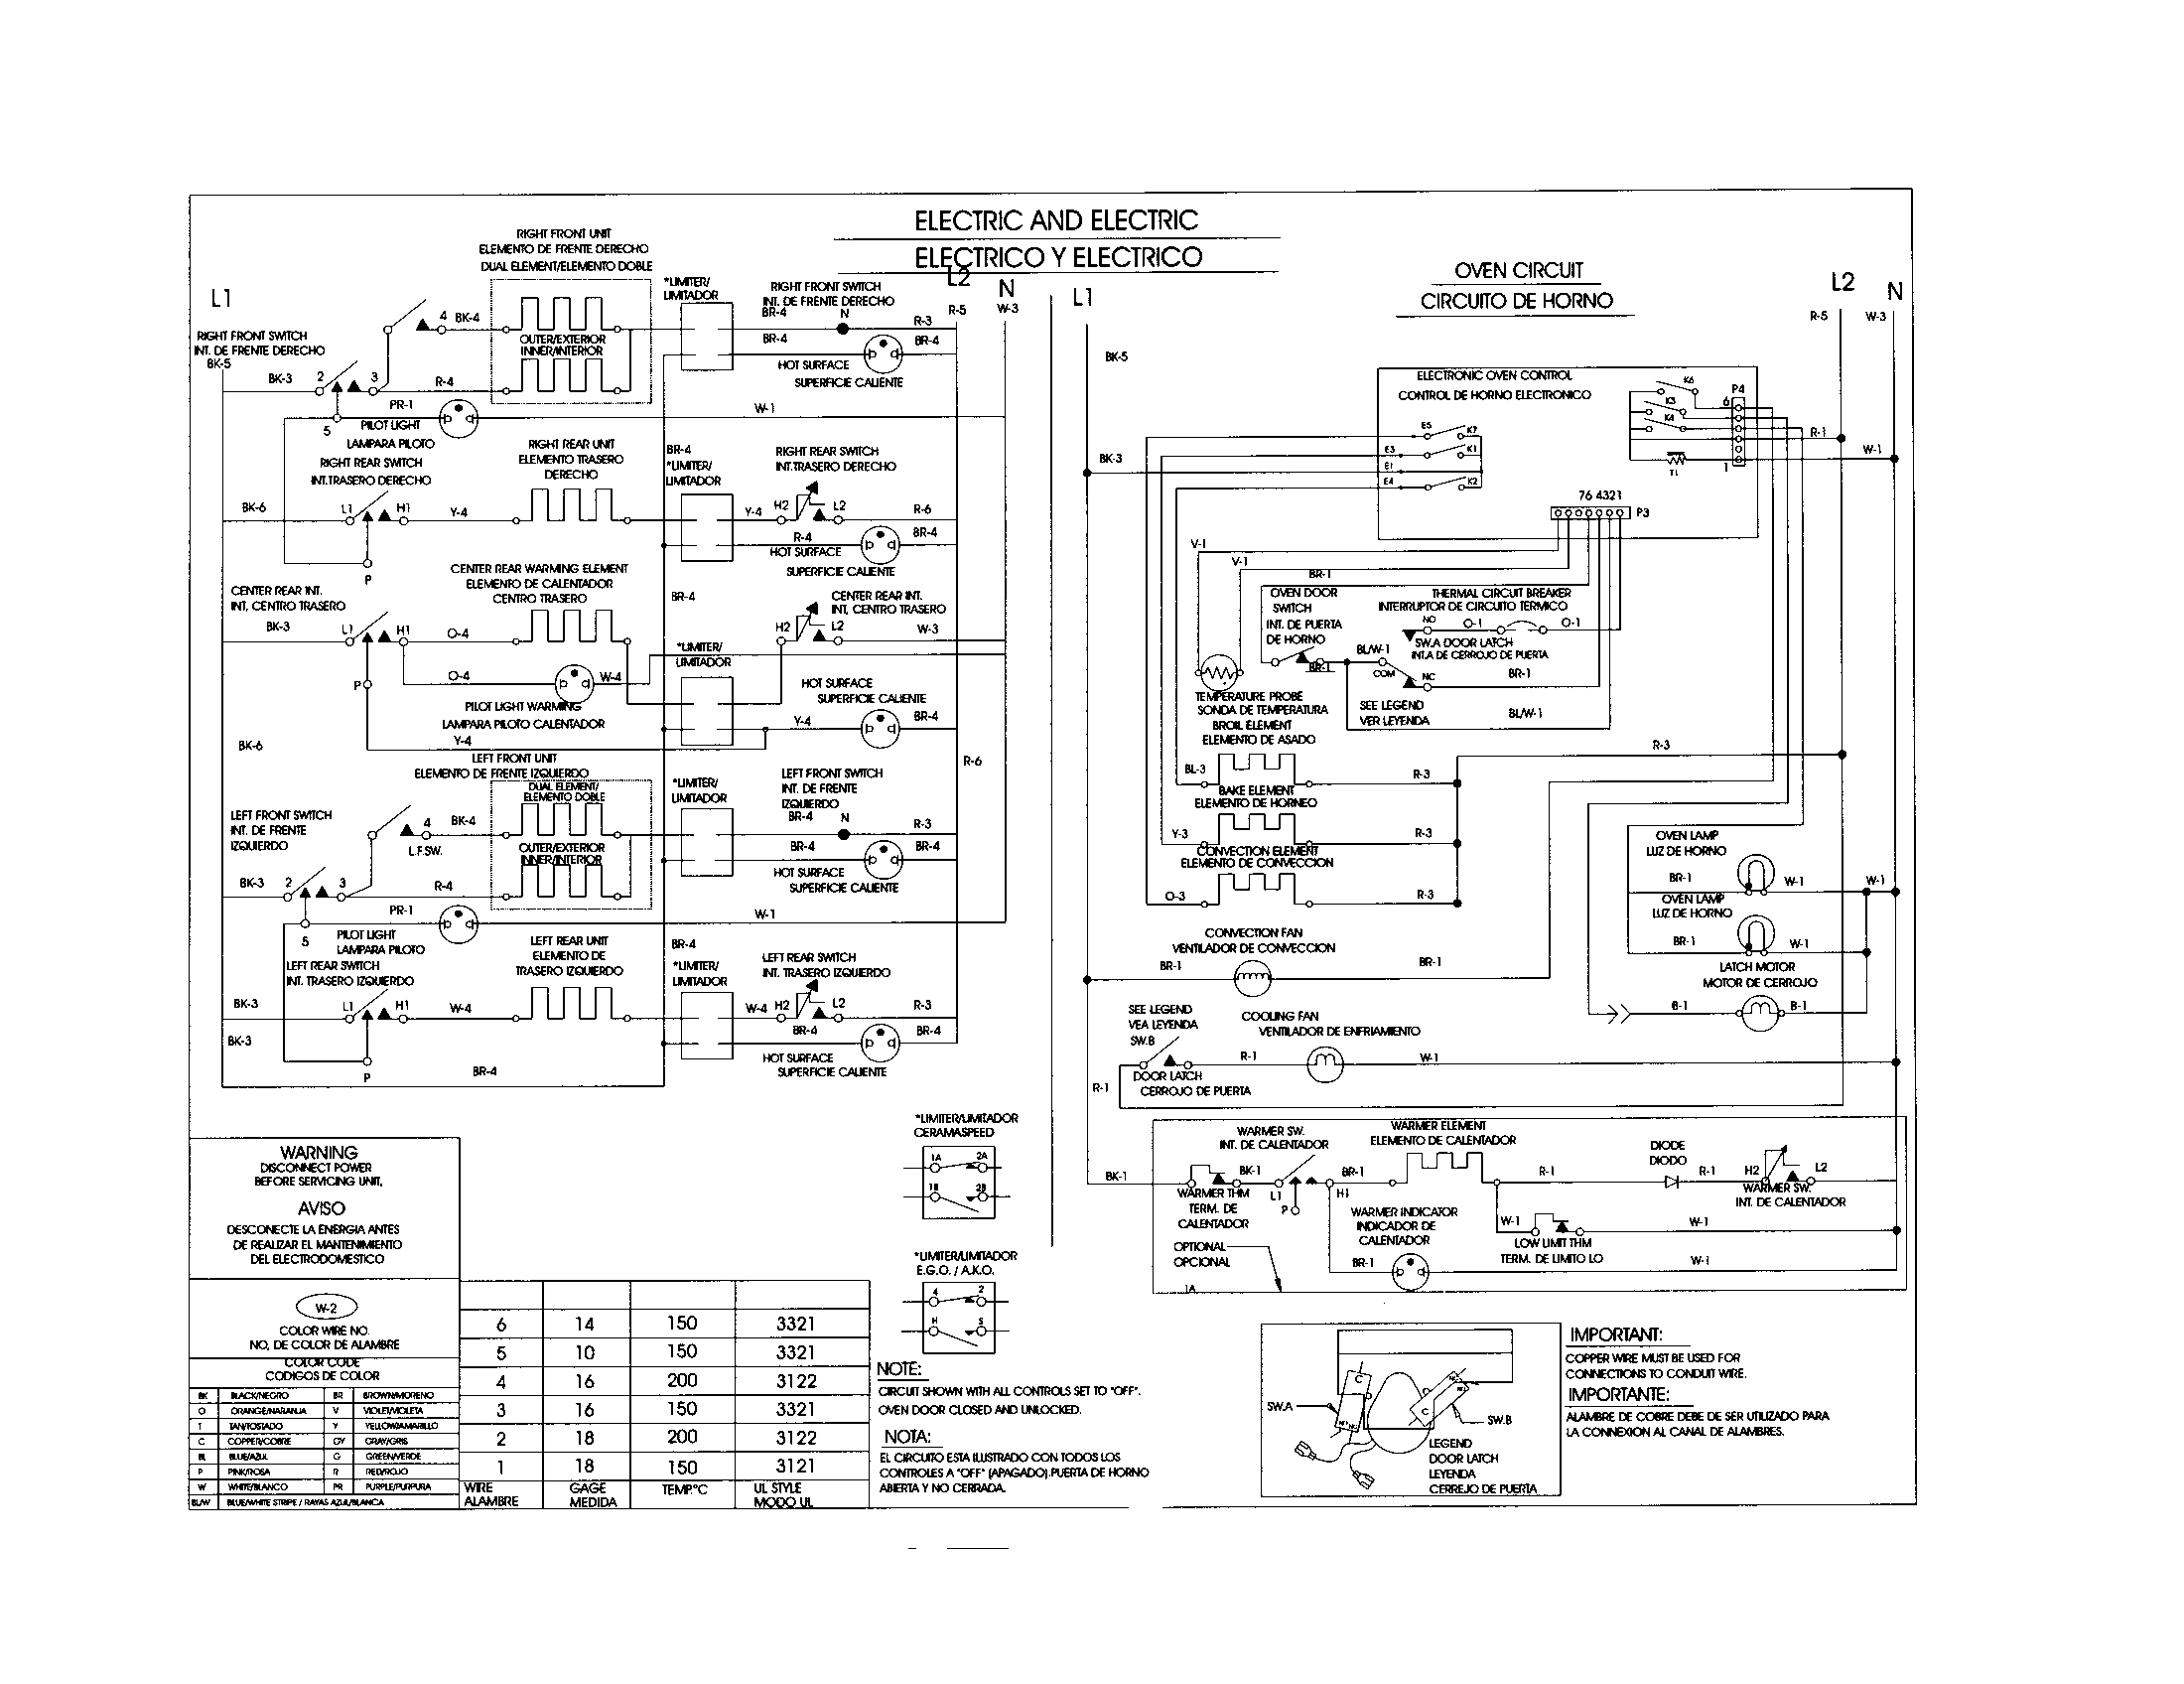 kenmore wiring diagram kenmore image wiring diagram wiring diagram for kenmore elite dryer the wiring diagram on kenmore wiring diagram